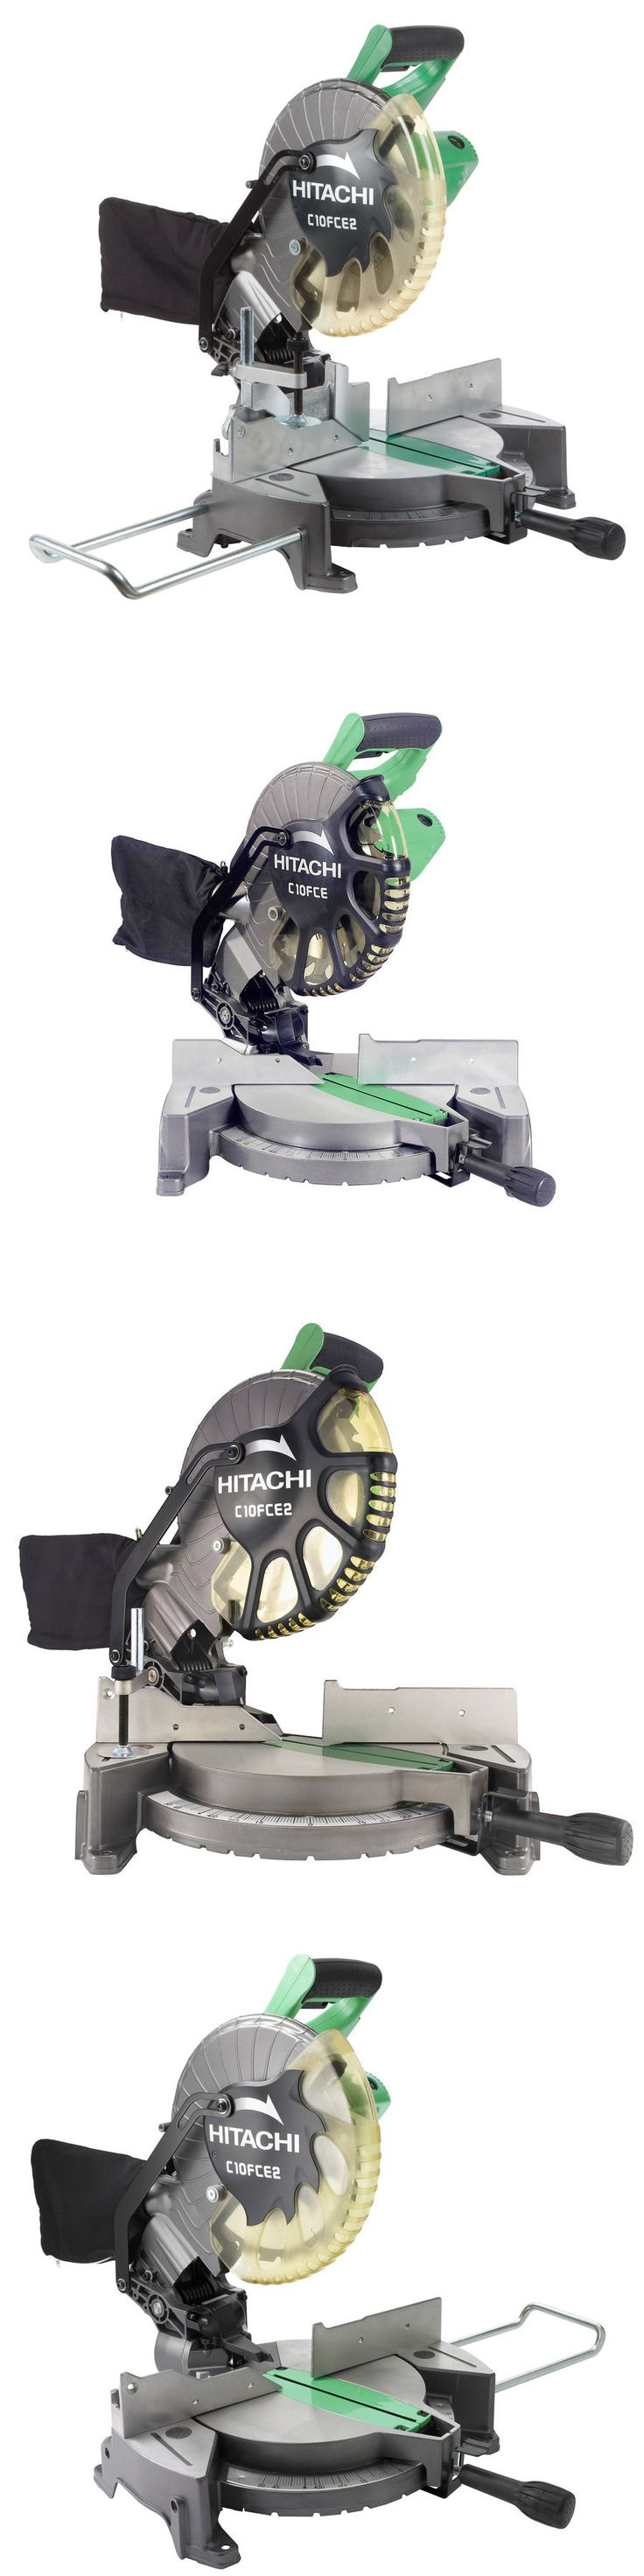 Miter and Chop Saws 20787: New Hitachi C10fce2 10-In 15-Amp Bevel Compound Miter Saw -> BUY IT NOW ONLY: $64.99 on eBay!